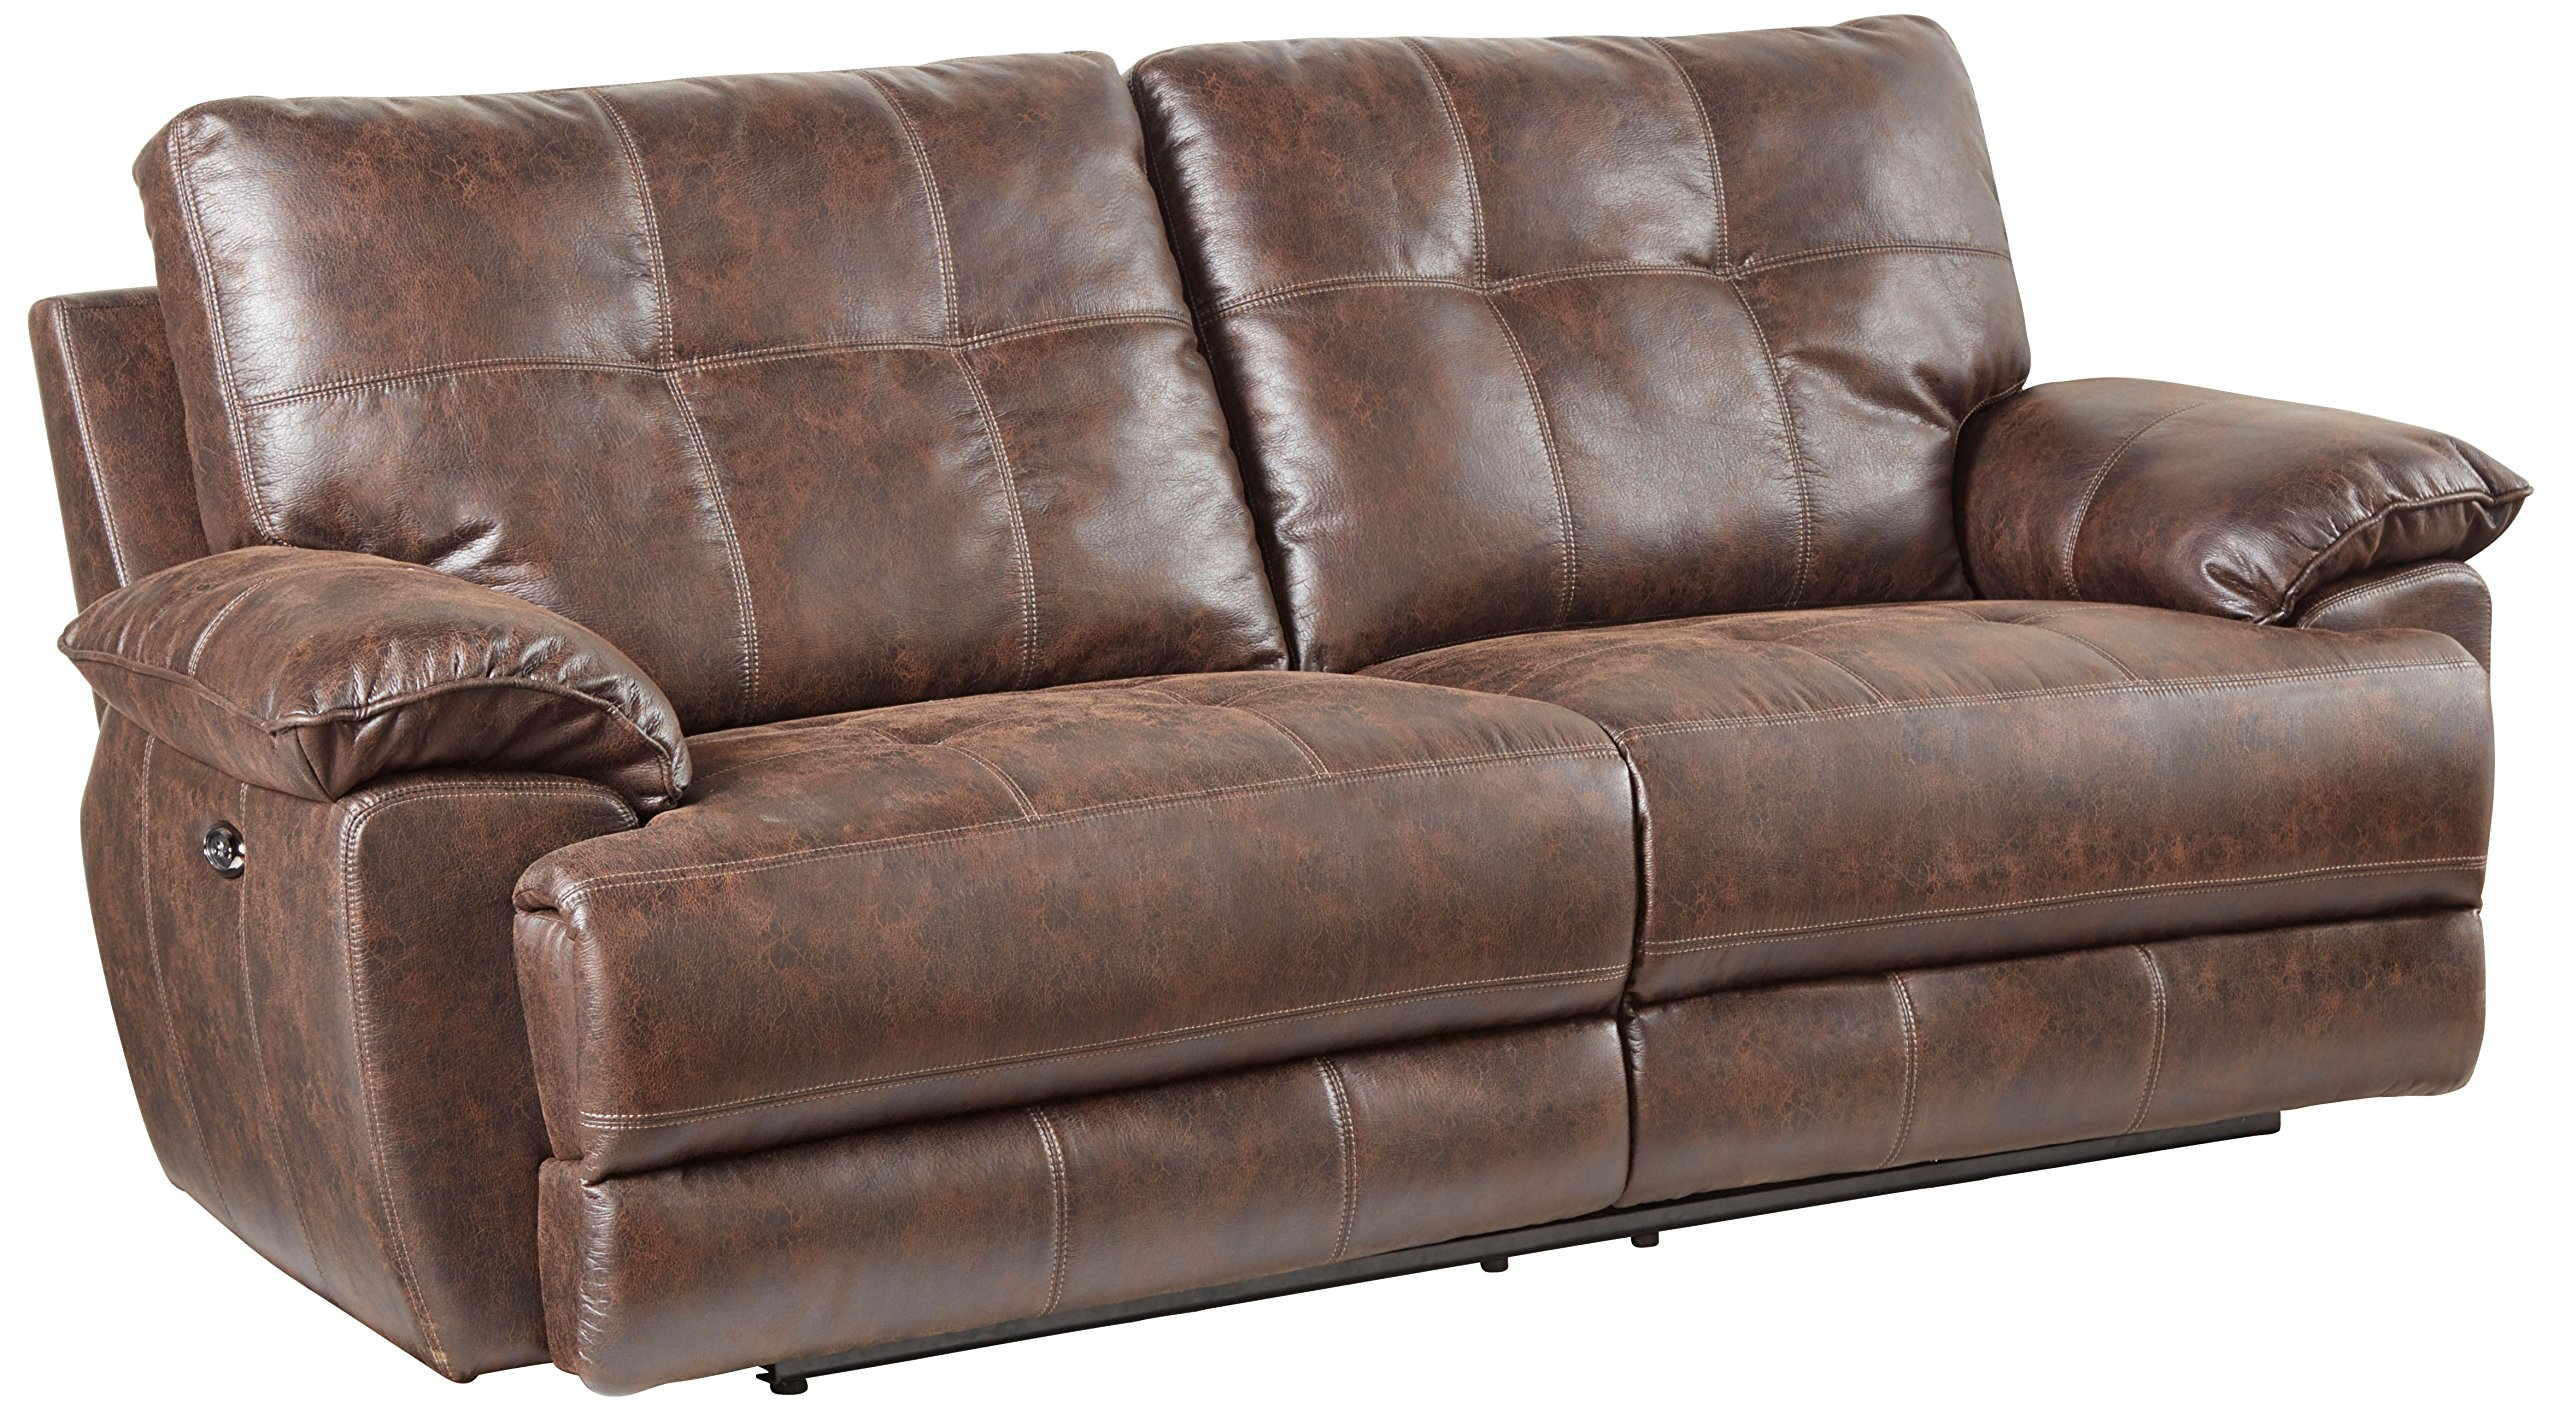 Standard Furniture 4147391 Hollister Sofa with Manual Motion, Brown